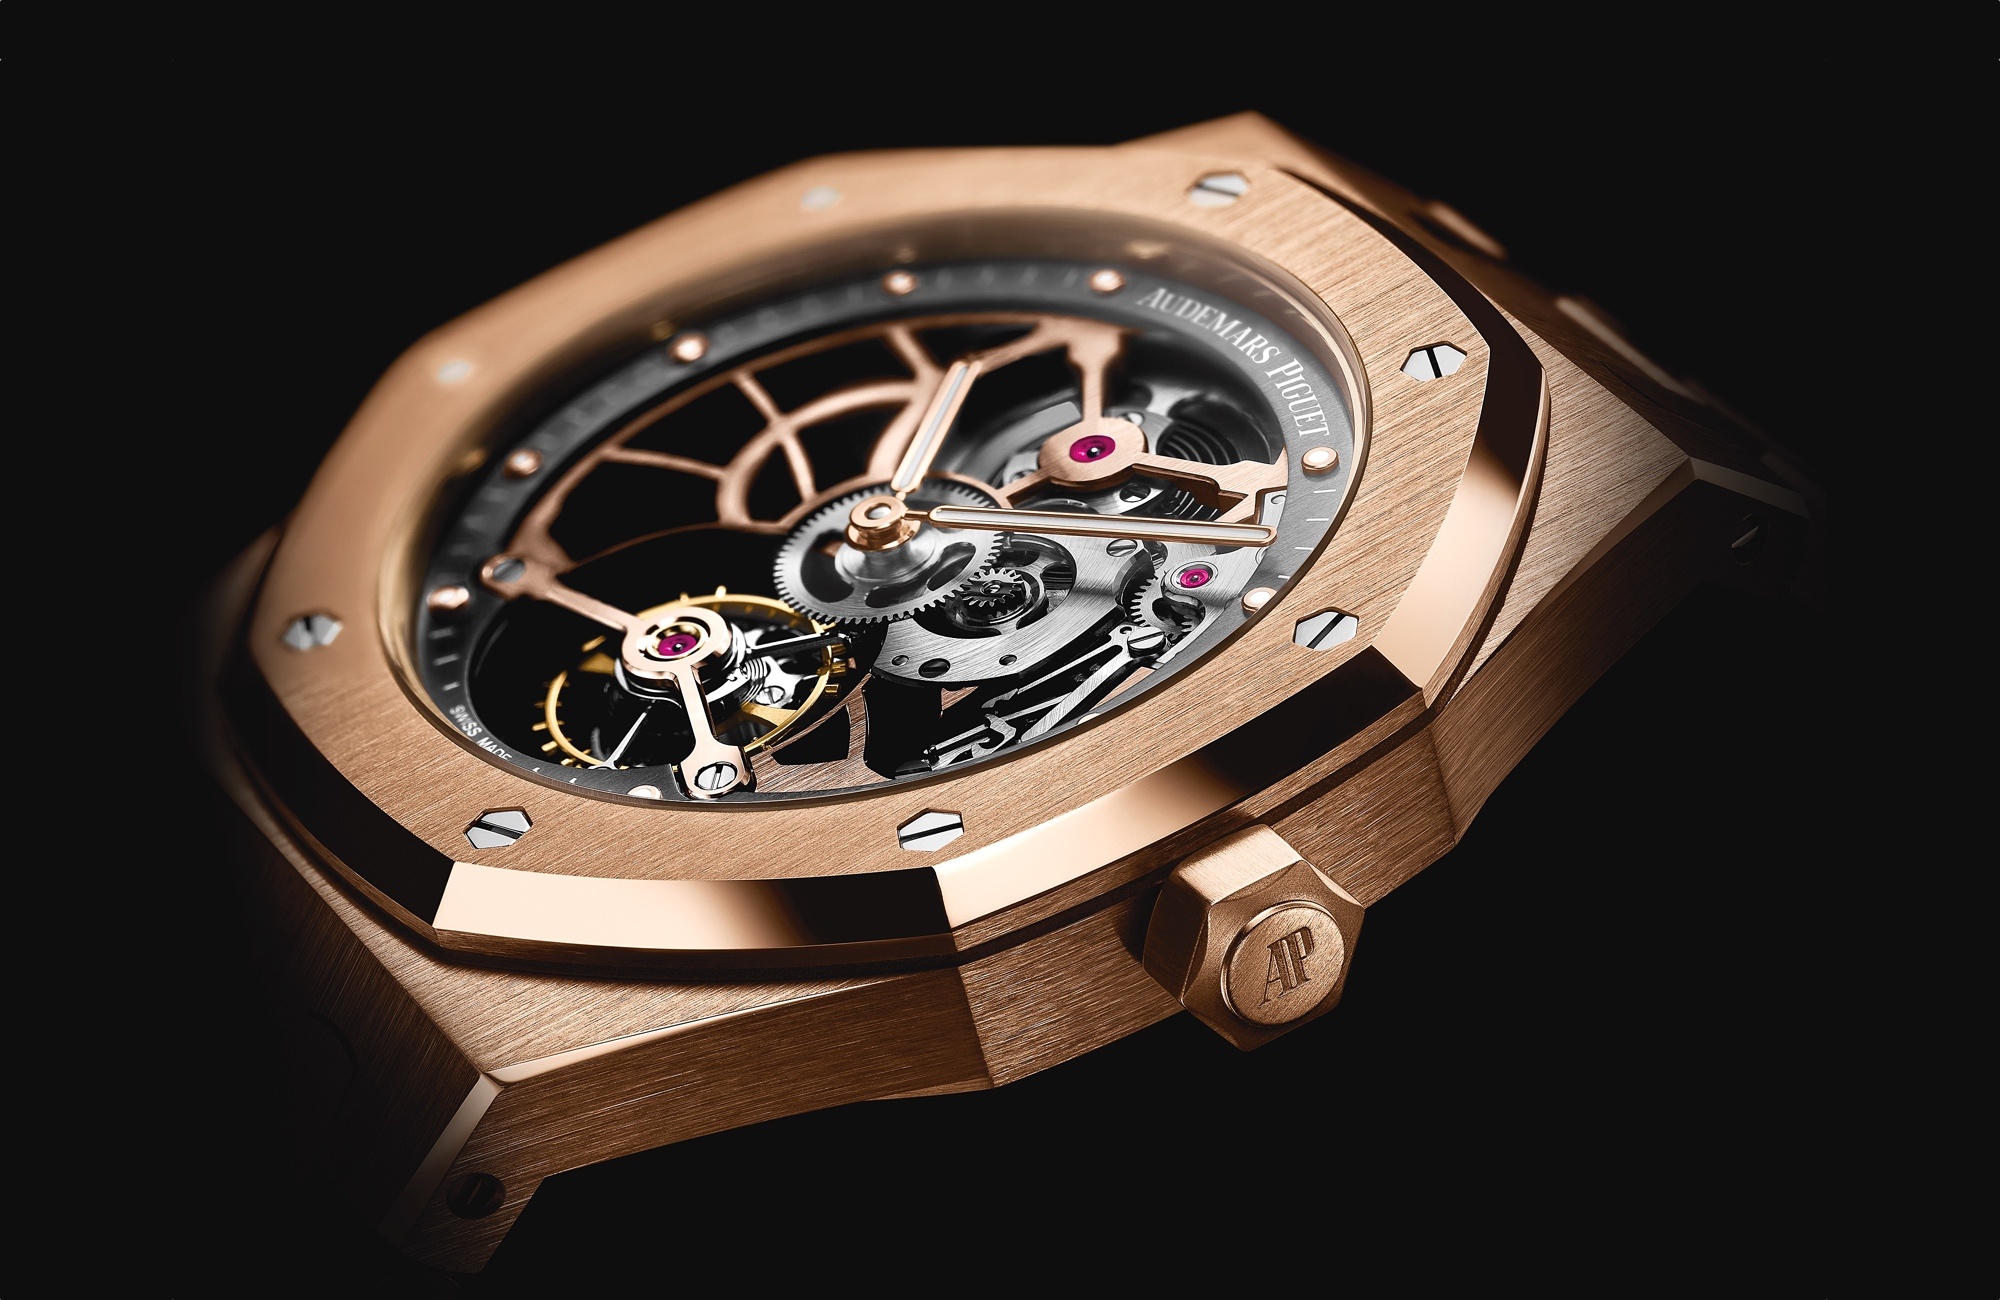 Audemars Piguet en el SIHH 2017 Royal Oak Offshore Tourbillon Extra-Thin Openworked 2017